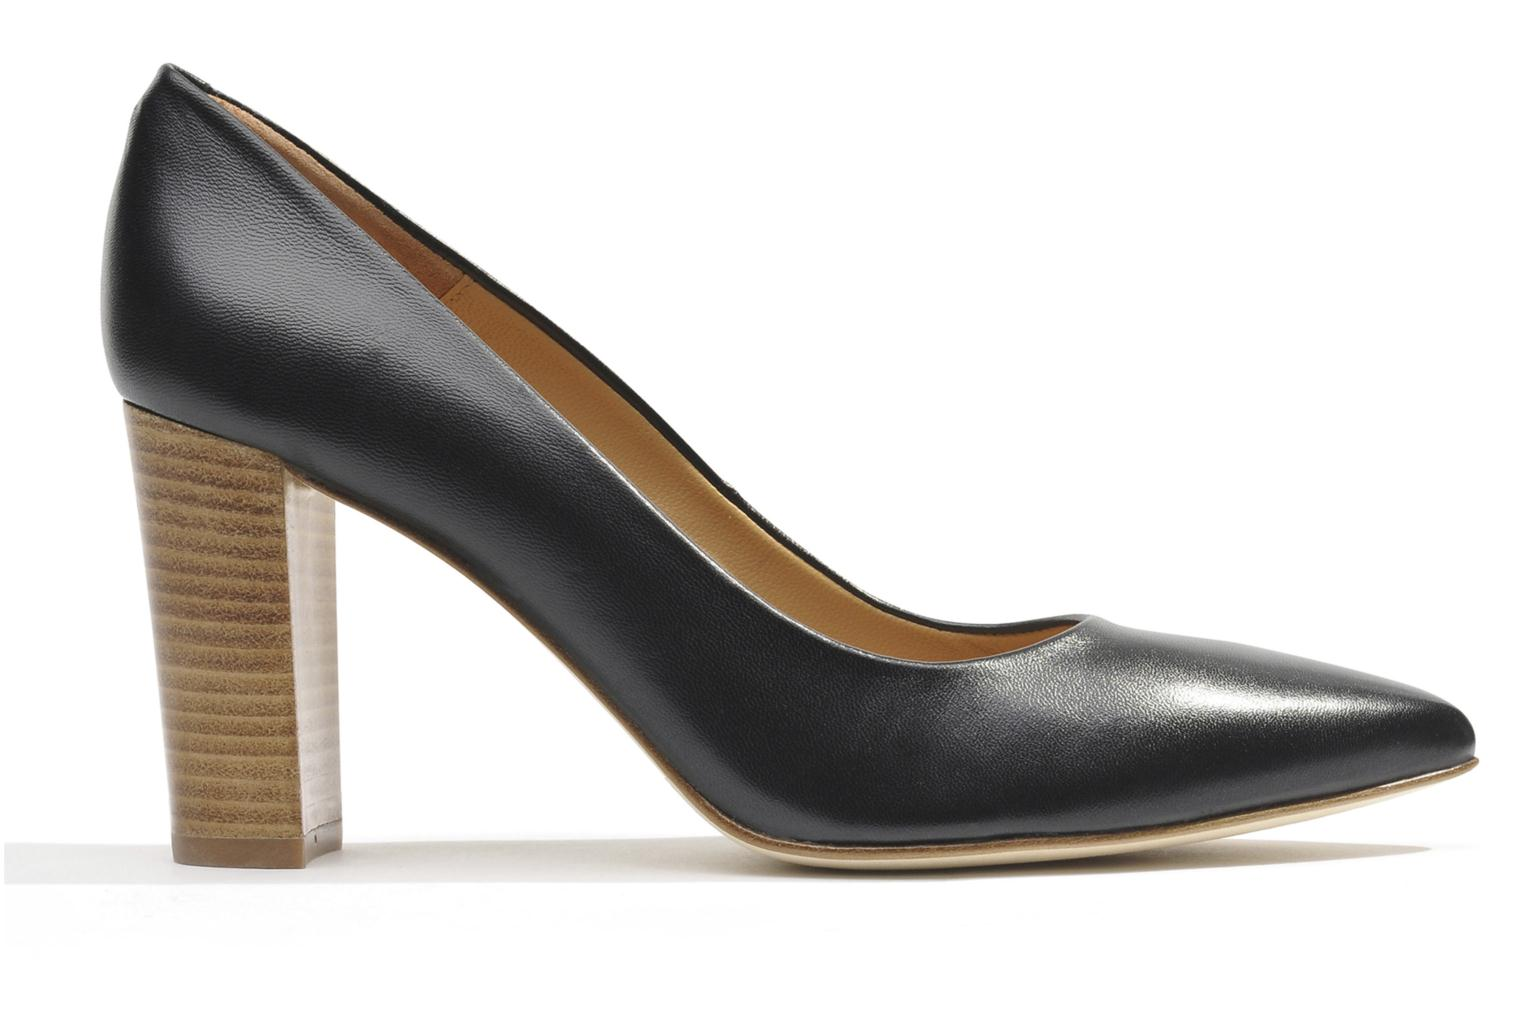 Marques Chaussure femme Made by SARENZA femme Gla?ons citrons #16 Ante indico